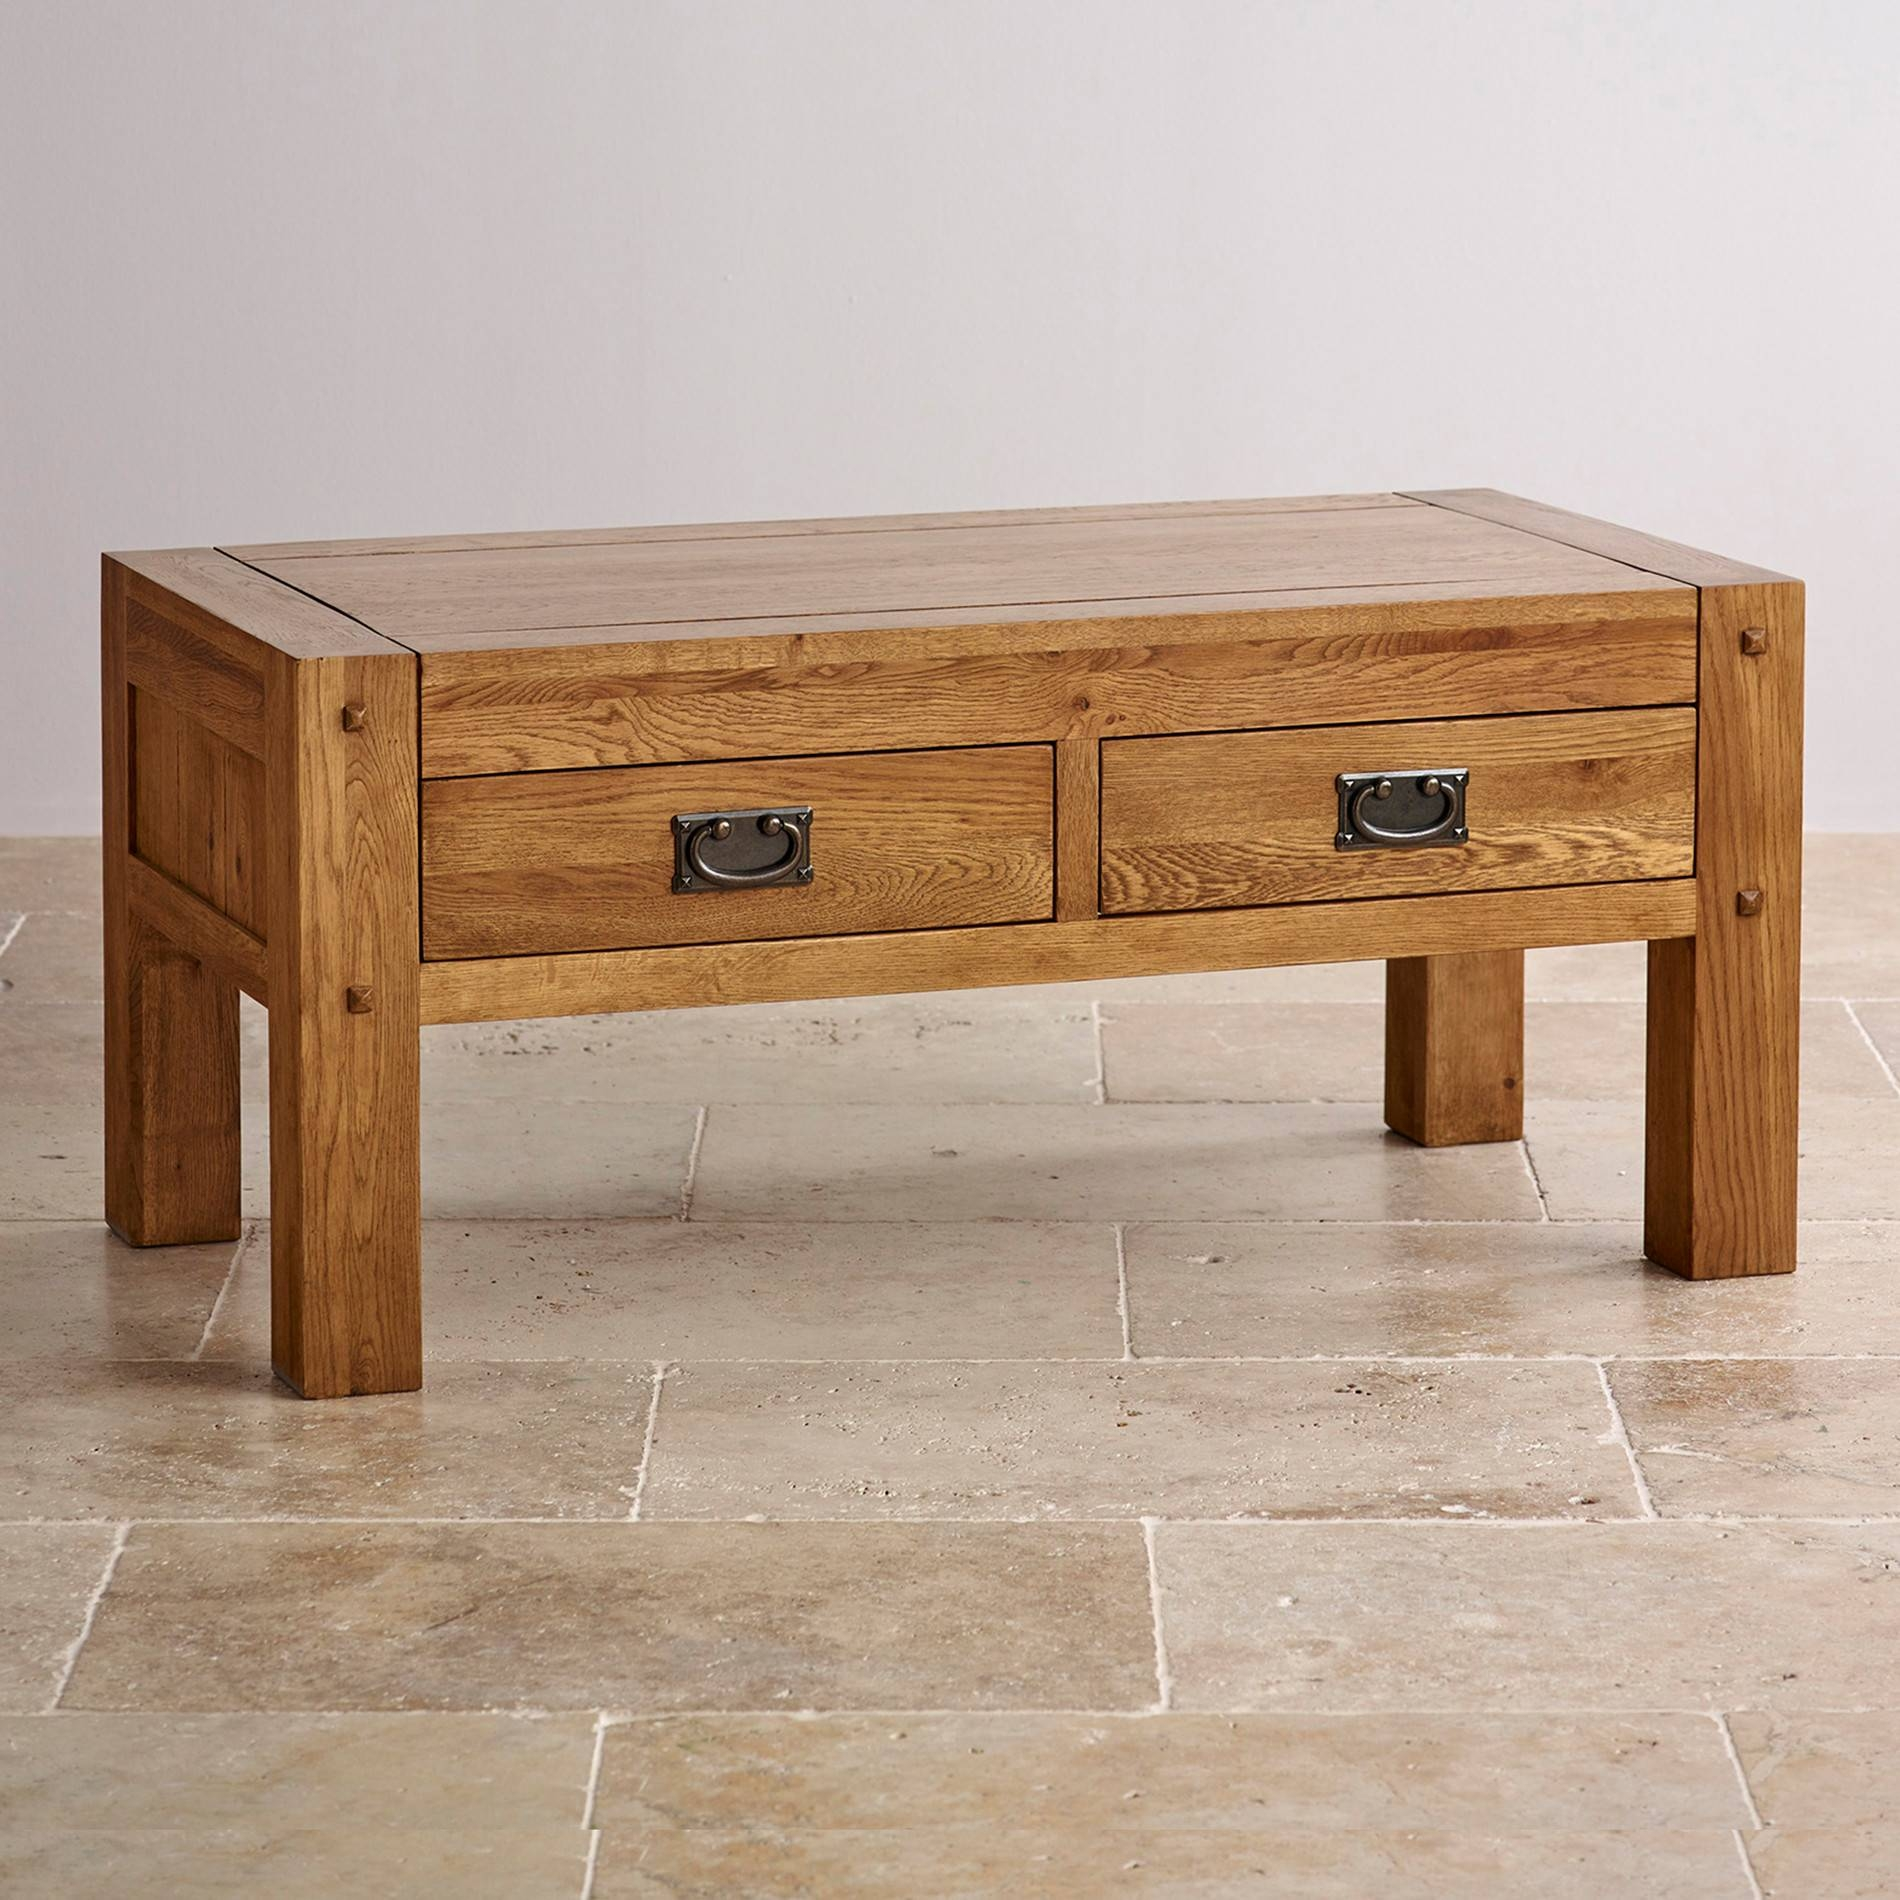 Quercus Coffee Table | Rustic Solid Oak | Oak Furniture Land regarding Oak Coffee Tables With Storage (Image 12 of 15)